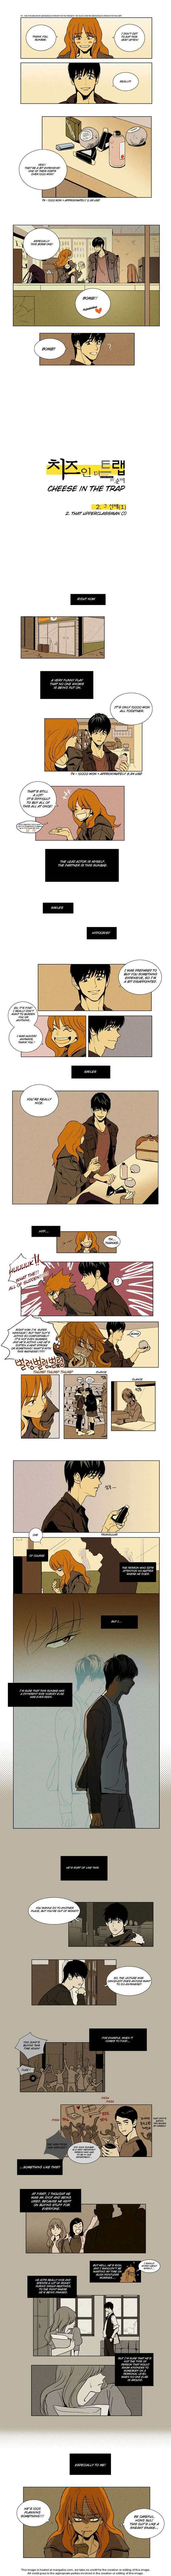 Cheese In The Trap 2 Page 1